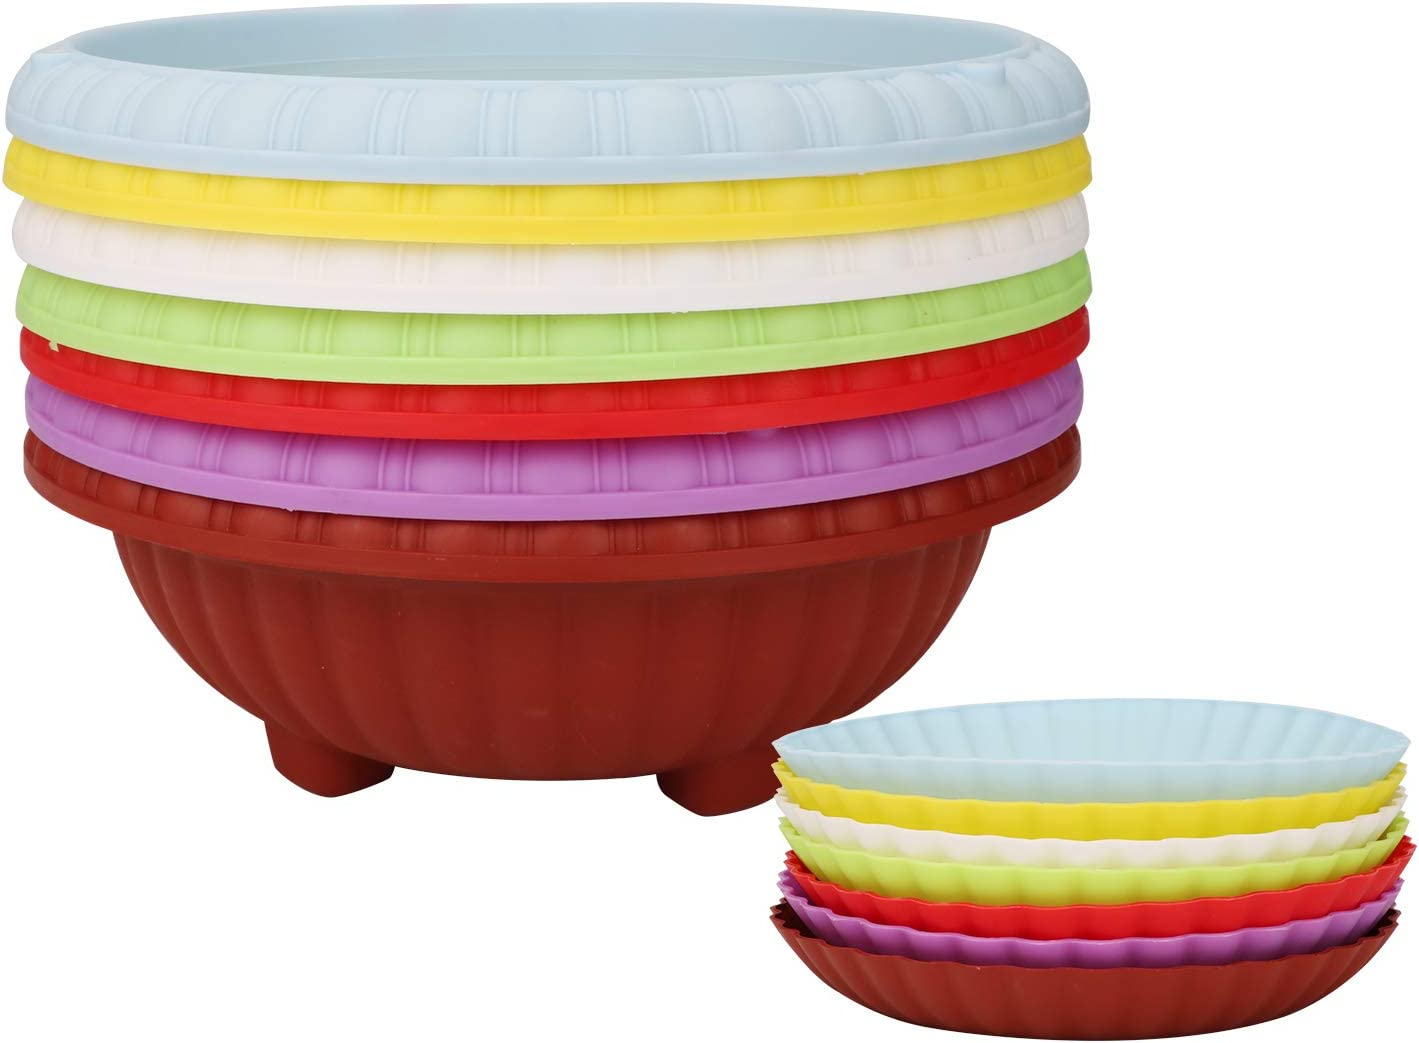 Plastic Plant Pots with Drainage Holes, Ufrount Gardening Containers, Flower Pots, Perfect for Garden/Yard/Kitchen/Flower/Succulents - Set of 7 (7 Colors, Hanging Basket)